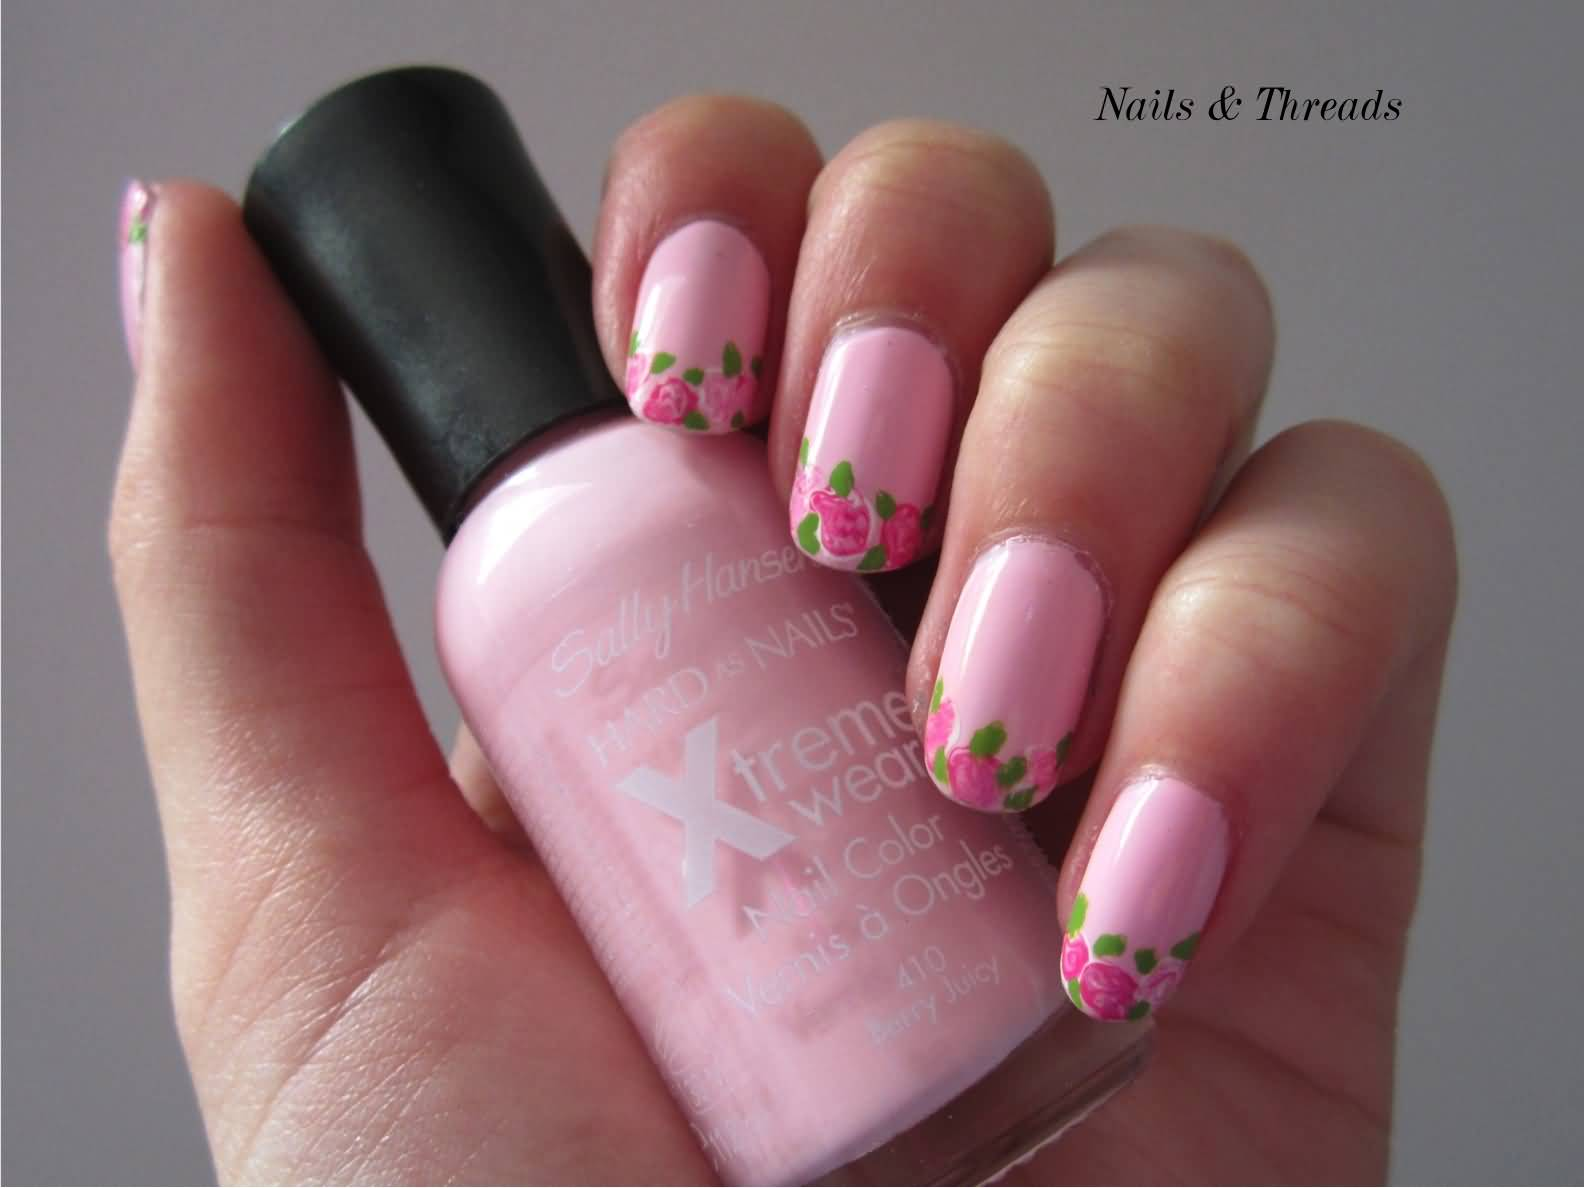 Colored french nail design - Pink Nails With Rose Flower French Tip Nail Art